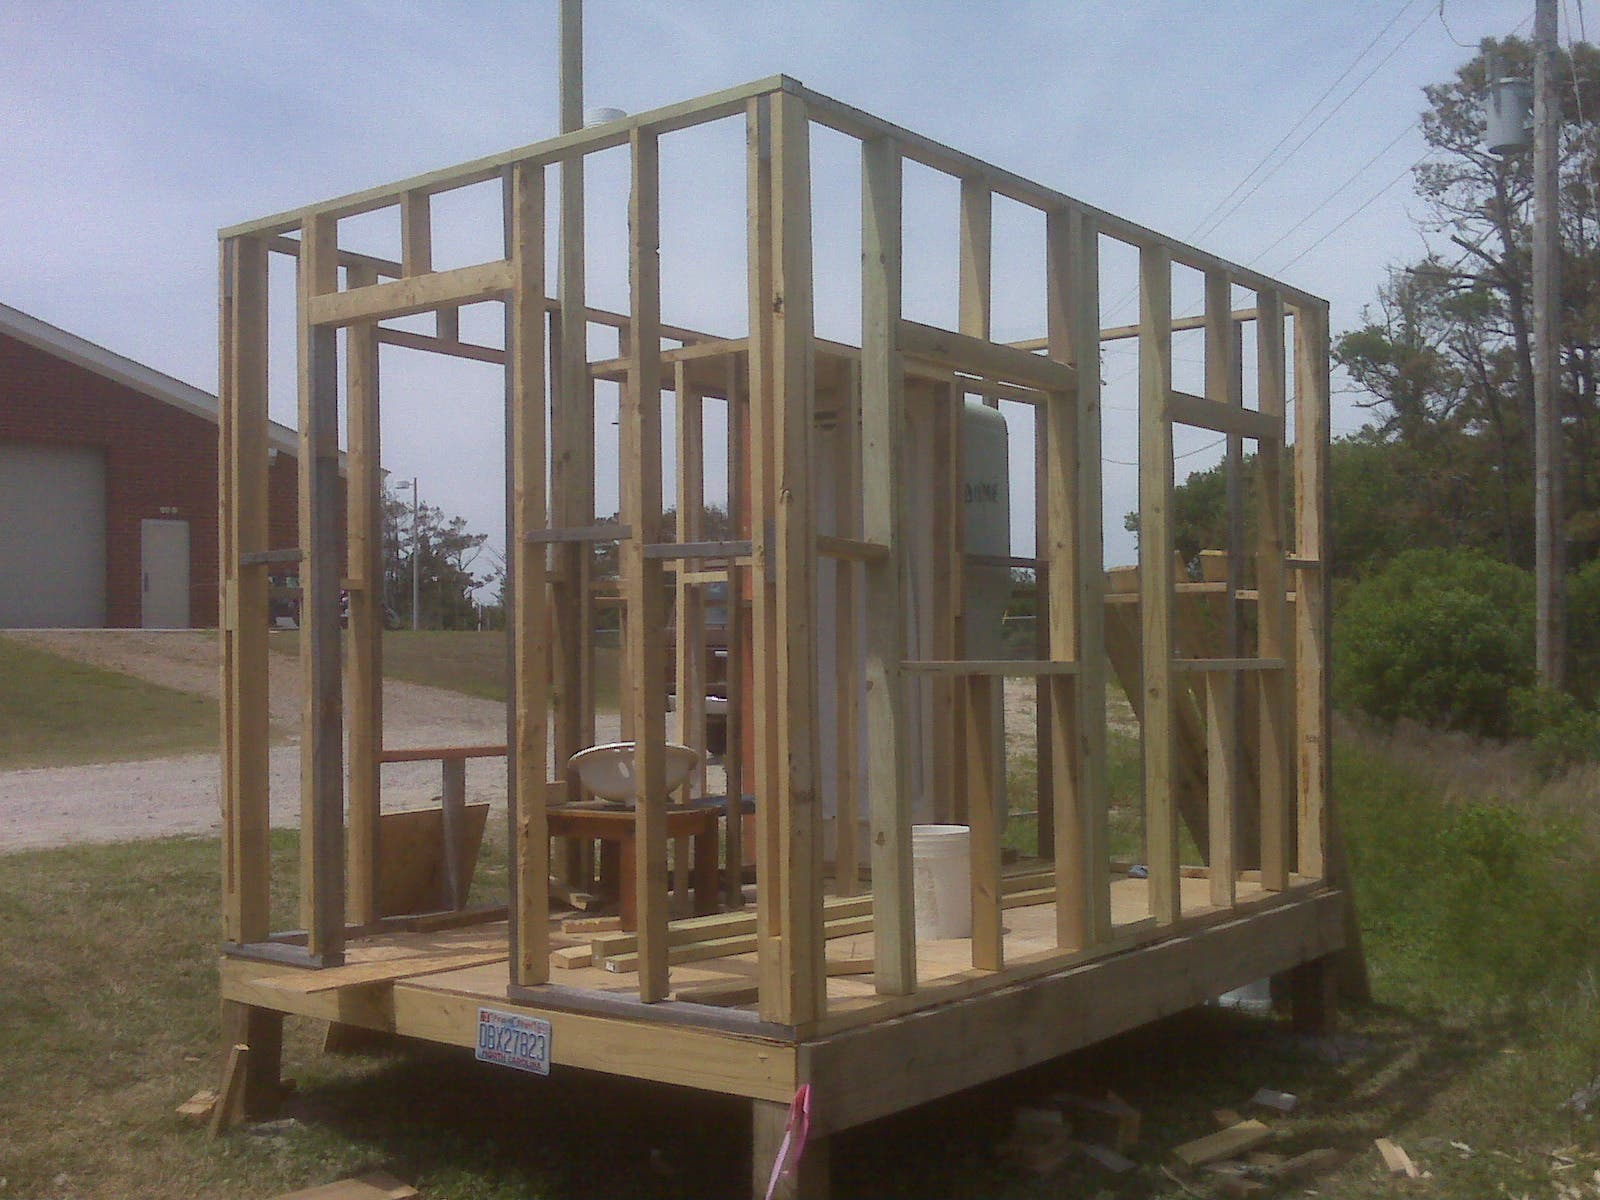 Ted Fort In Salvo Nc On The Outer Banks And A Group Of Students Are Building A 96 Square Foot House Using Completely Found Materials